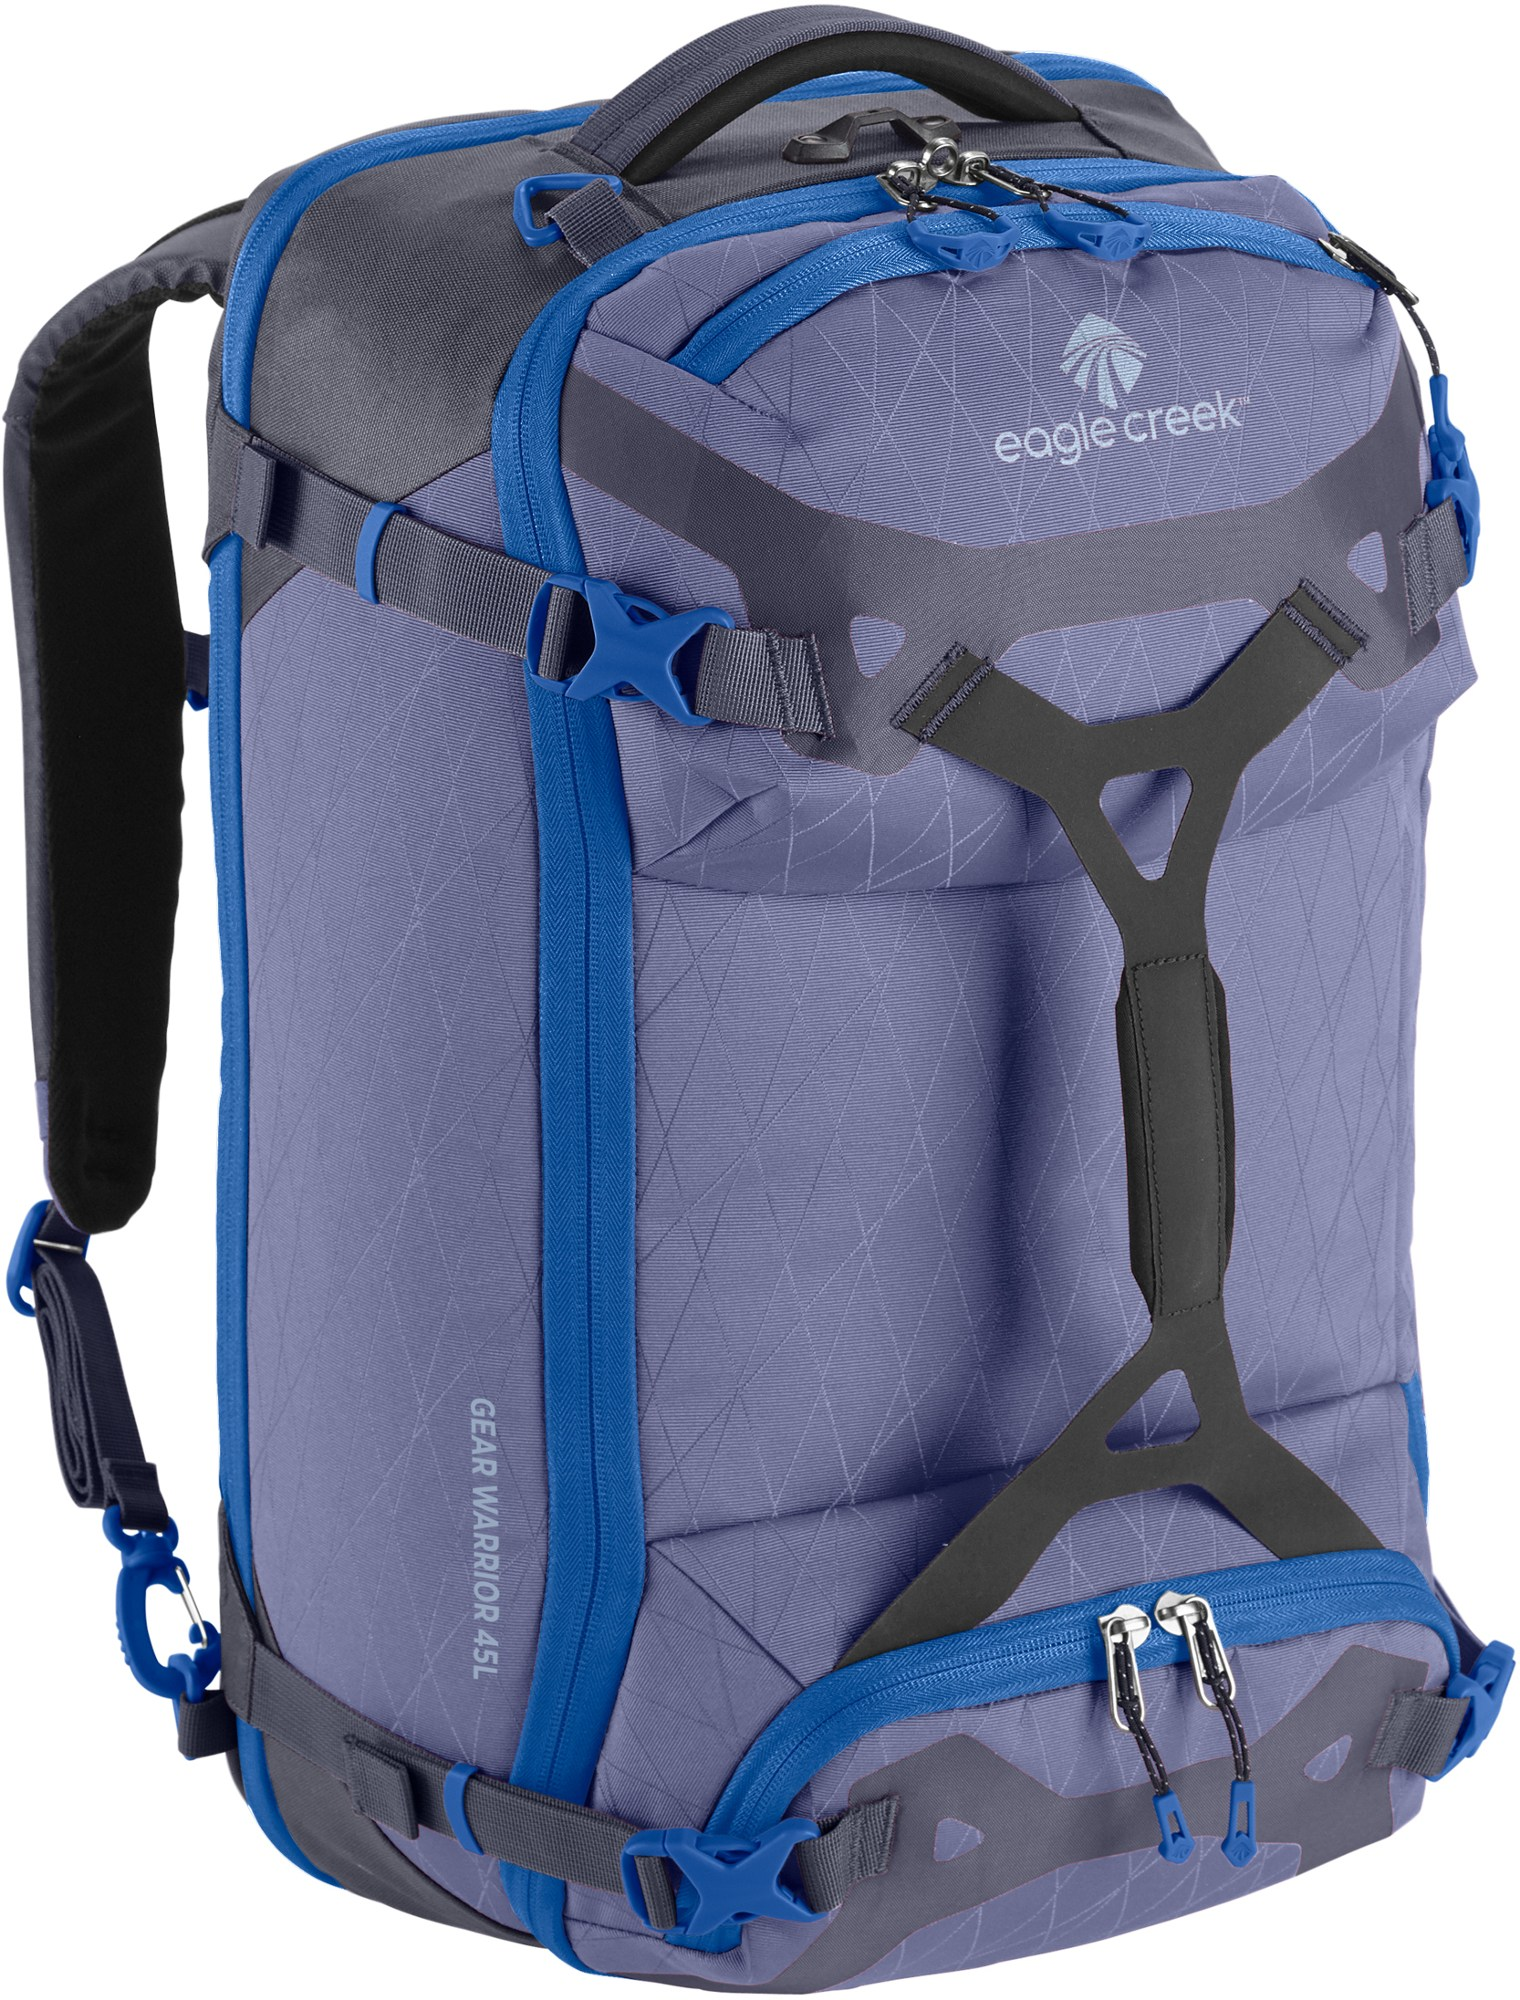 Eagle Creek Gear Warrior Travel Pack - 45 Liters